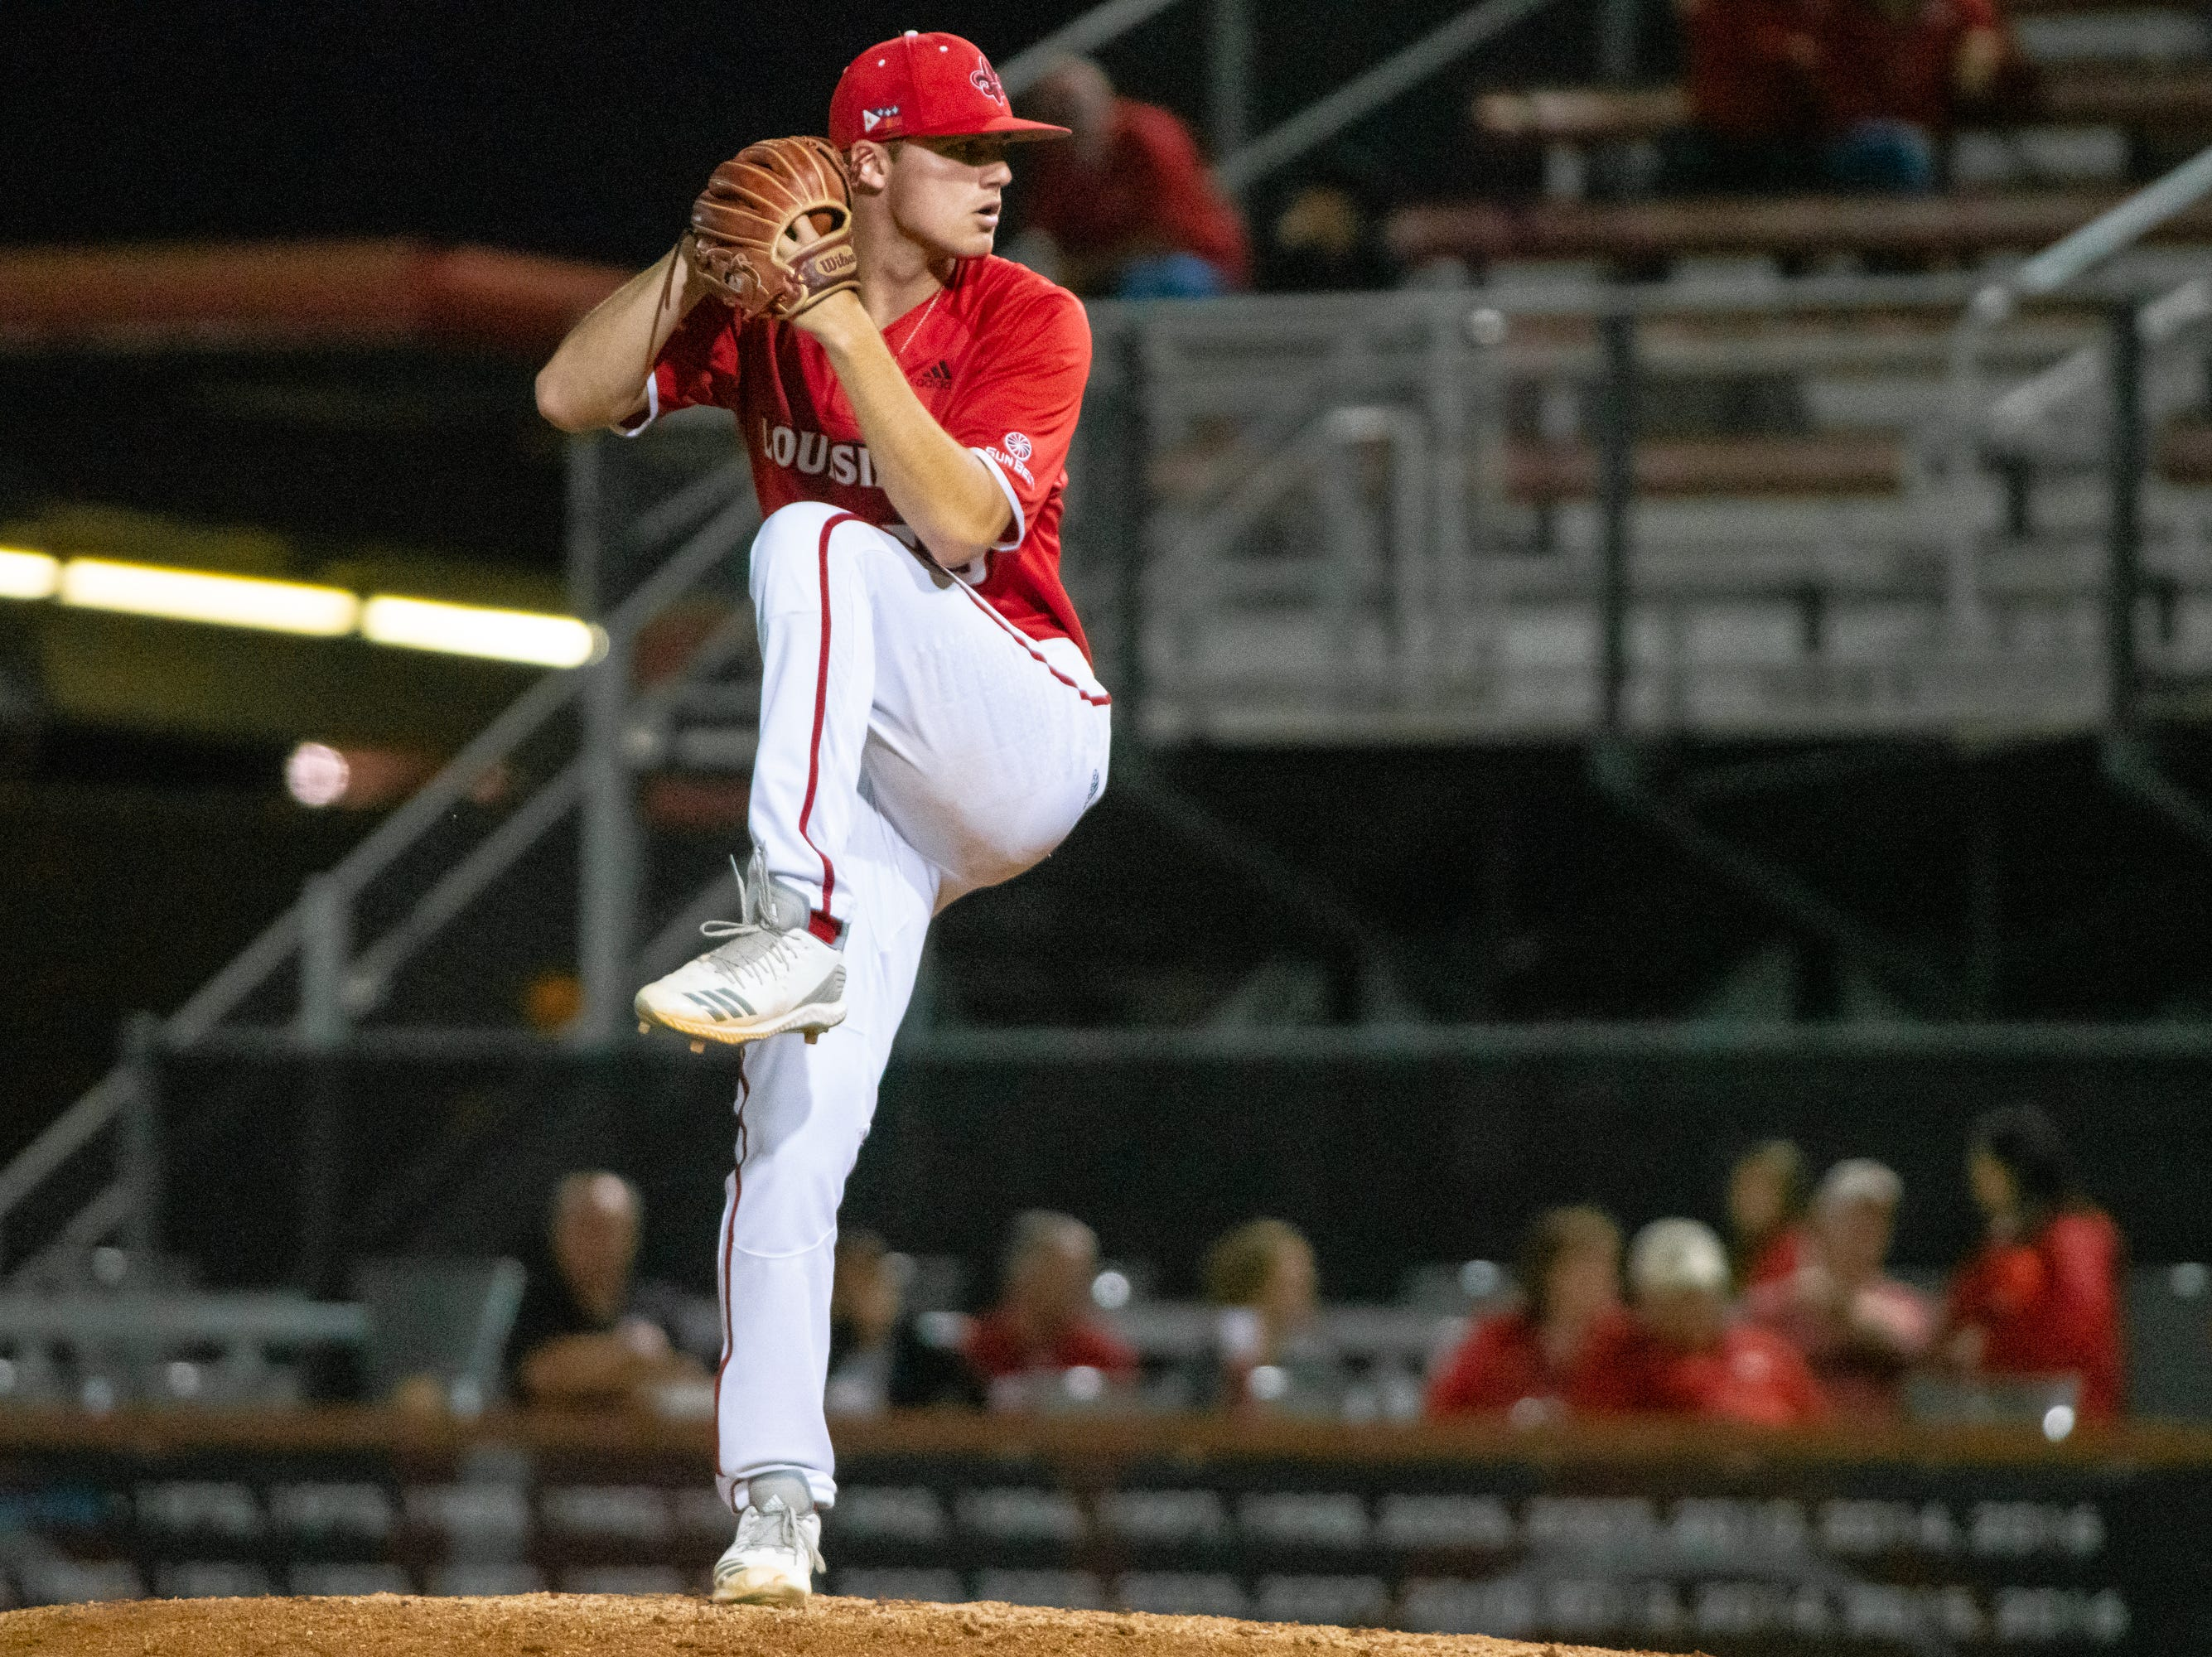 """UL's pitcher Michael Leaumont prepares a throw to the batter as the Ragin' Cajuns take on the South Alabama Jaguars at M.L. """"Tigue"""" Moore Field on Friday, April 4, 2019."""